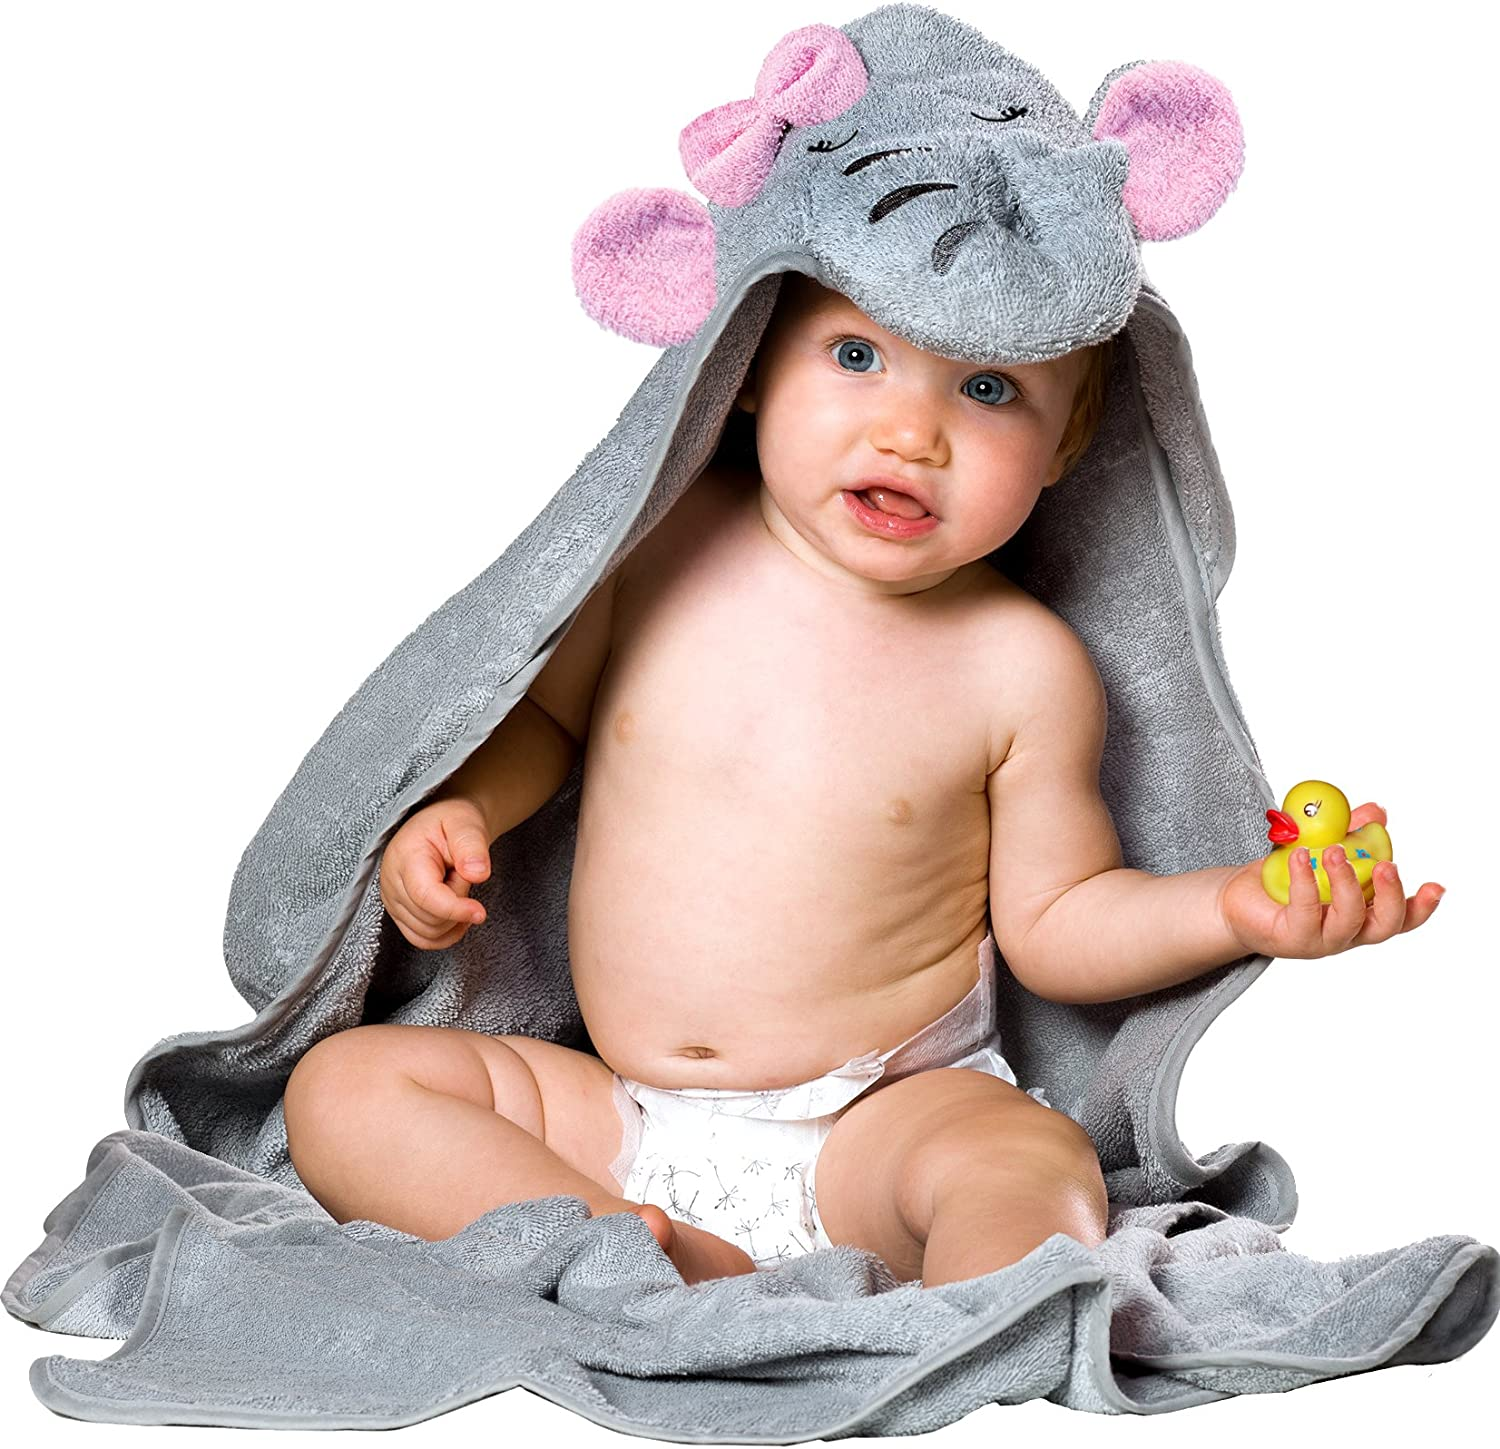 Toddlers I Baby Towel Perfect Baby Shower Gift for Girl I Baby Towels with Hood Newborn Hooded Bath Towels for Babies Hooded Baby Towel I Elephant